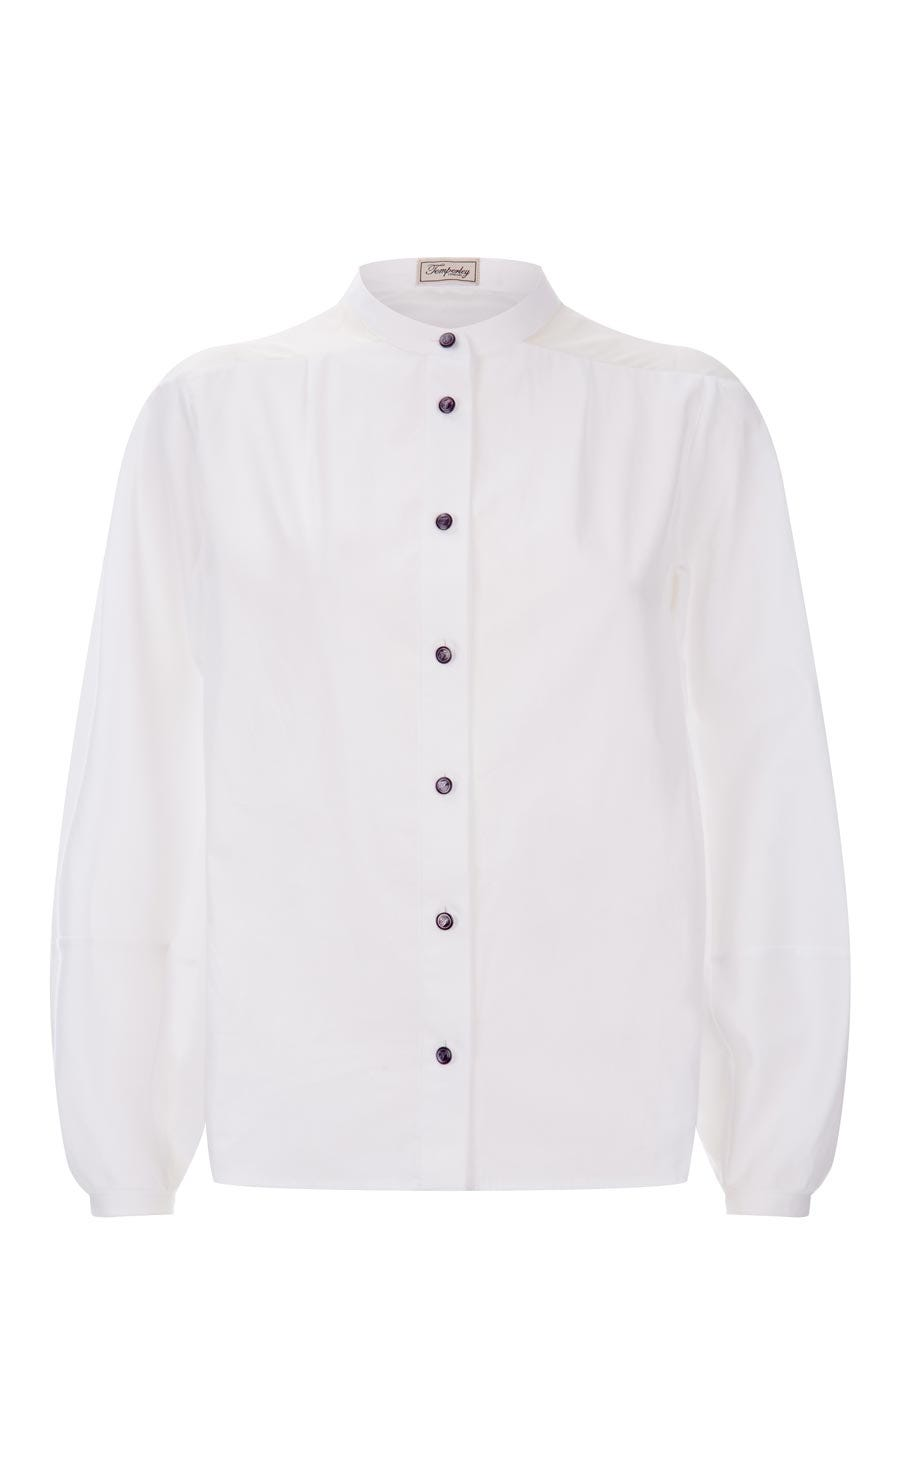 Enigma Sleeved Shirt, White